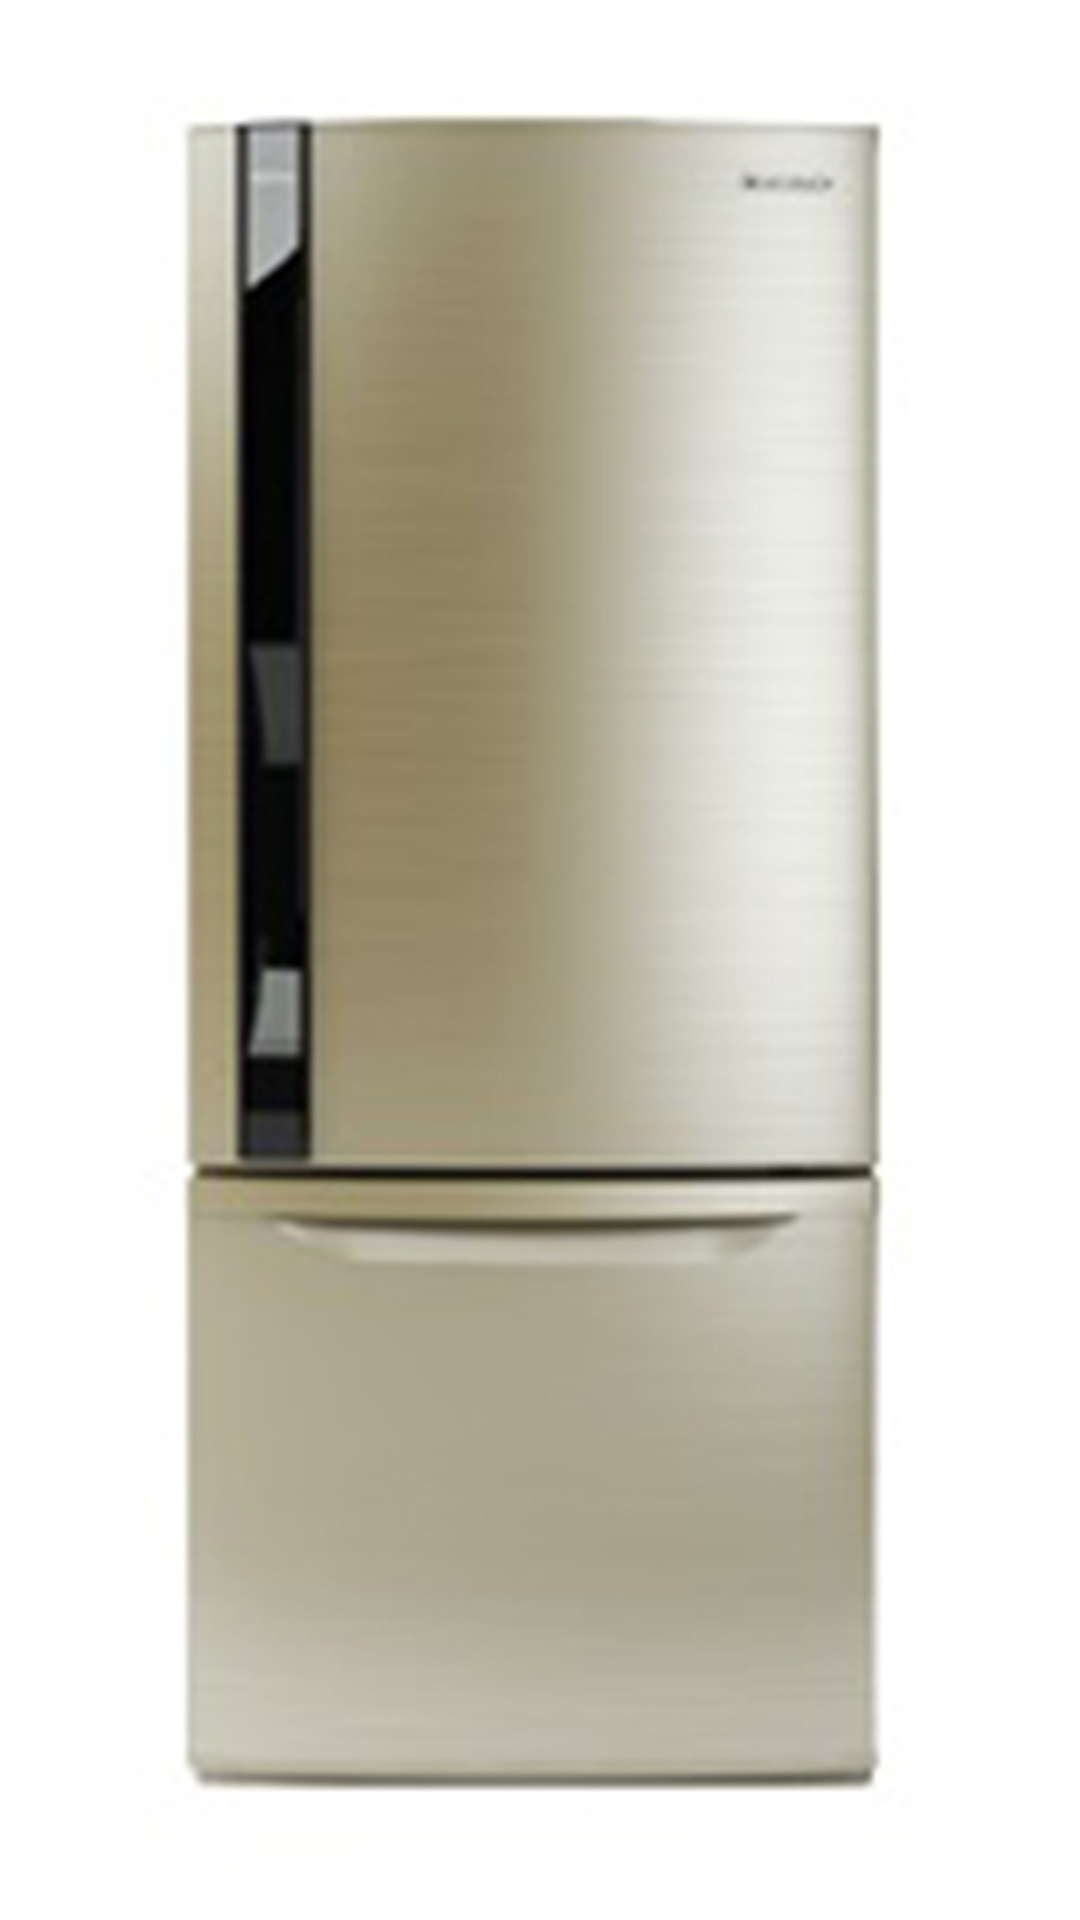 Panasonic NR-BW415VN 360 L Double Door Refrigerator (Champagne)